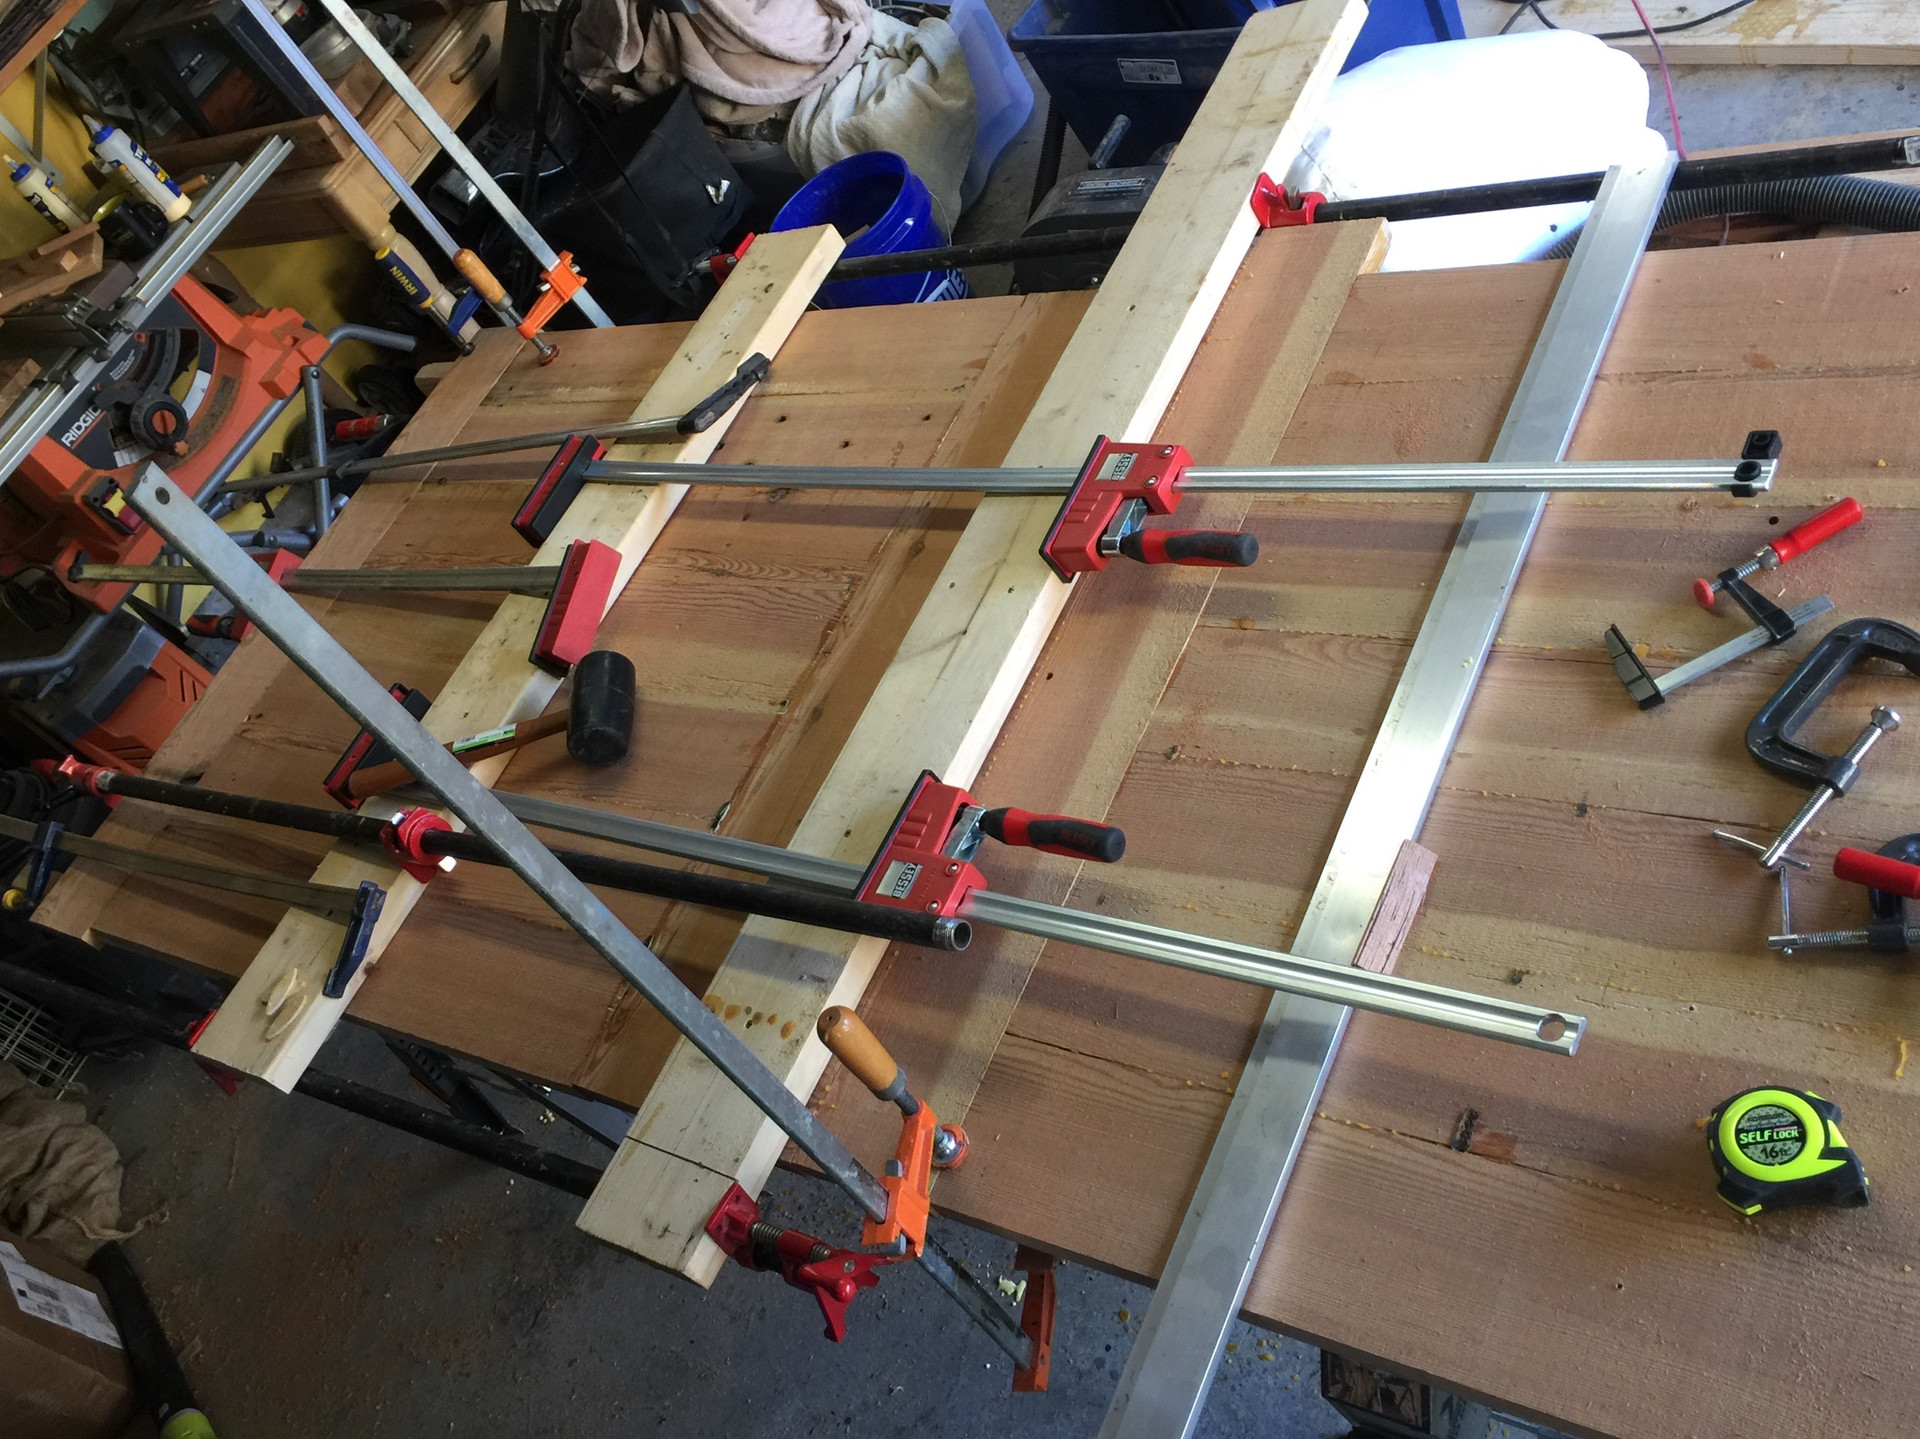 Clamping a tabel